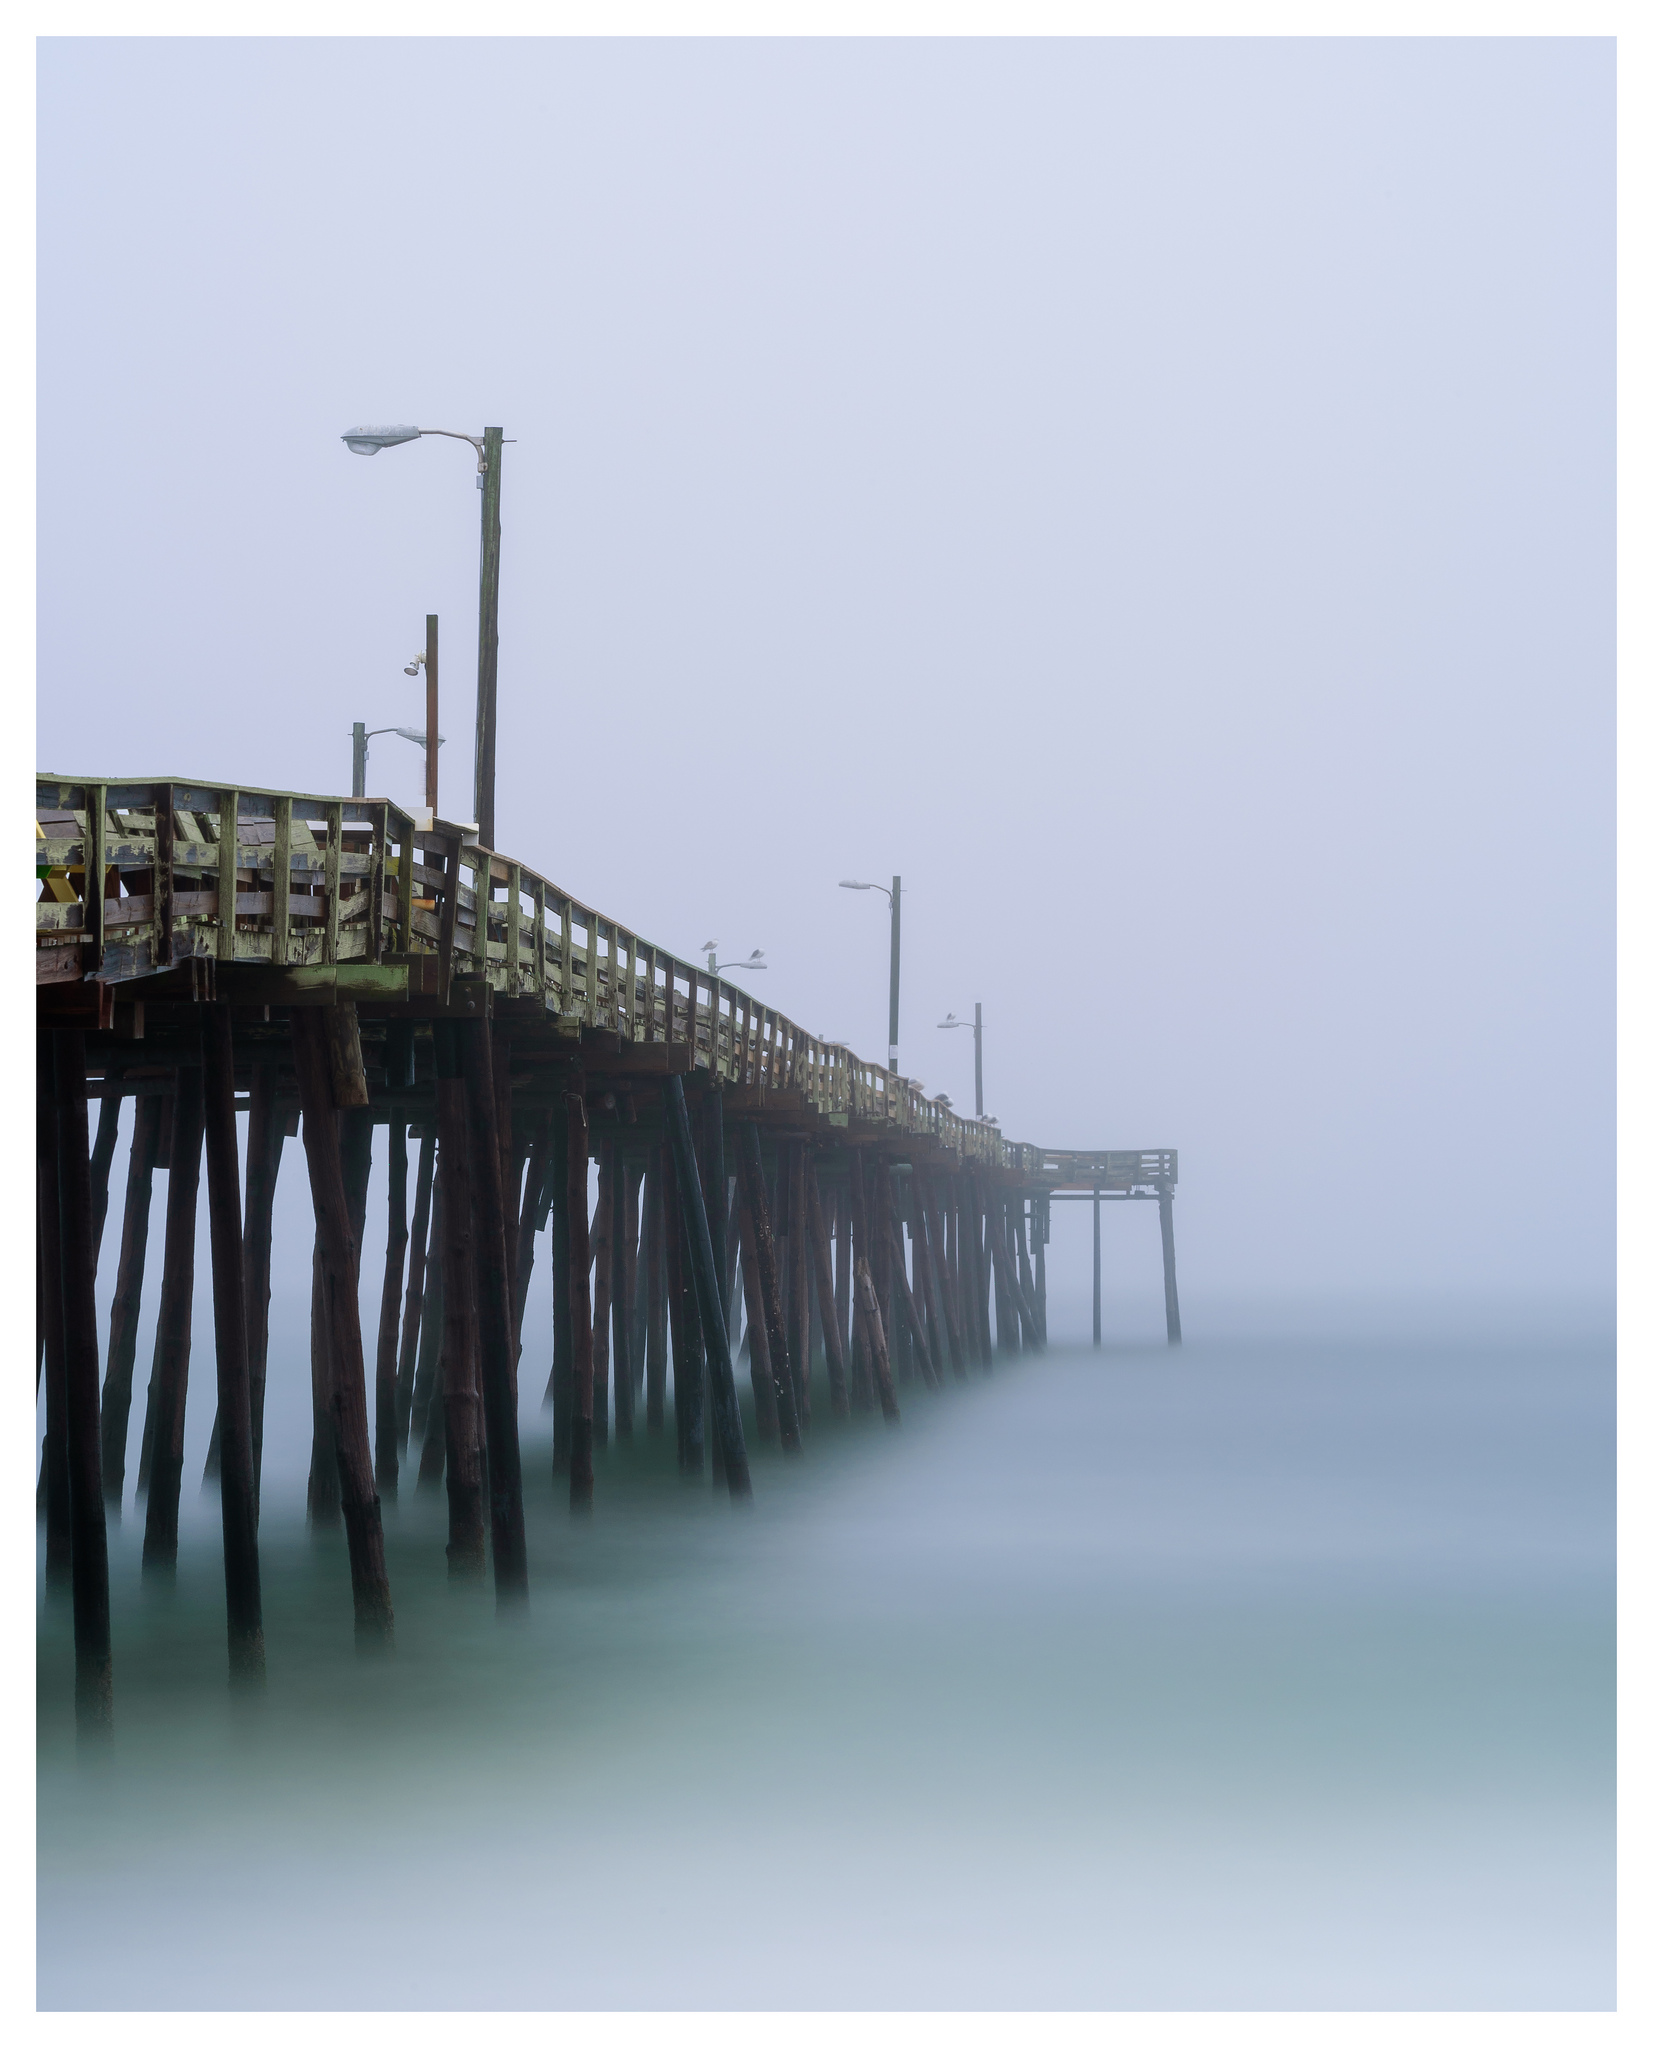 Nags Head Fishing Pier - Nikon D750 w/80-400mm lens, long exposure with tide coming in.